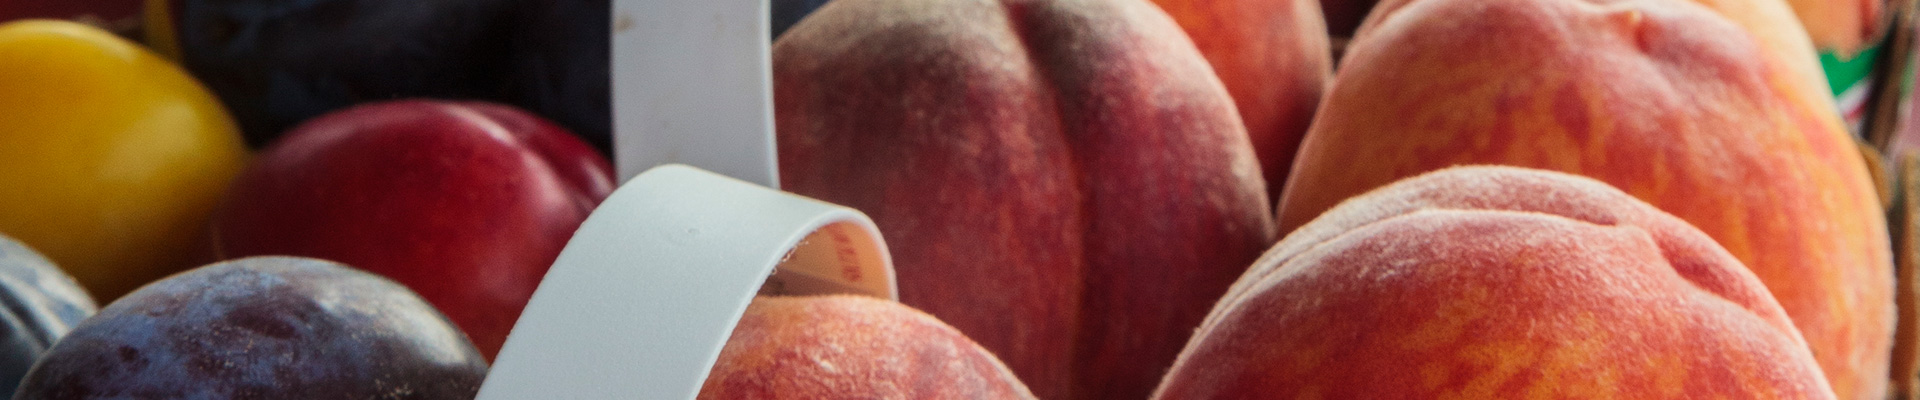 Photo-Peaches-2014-08-07-VQ-Grand-Tour-Niagara-037.jpg